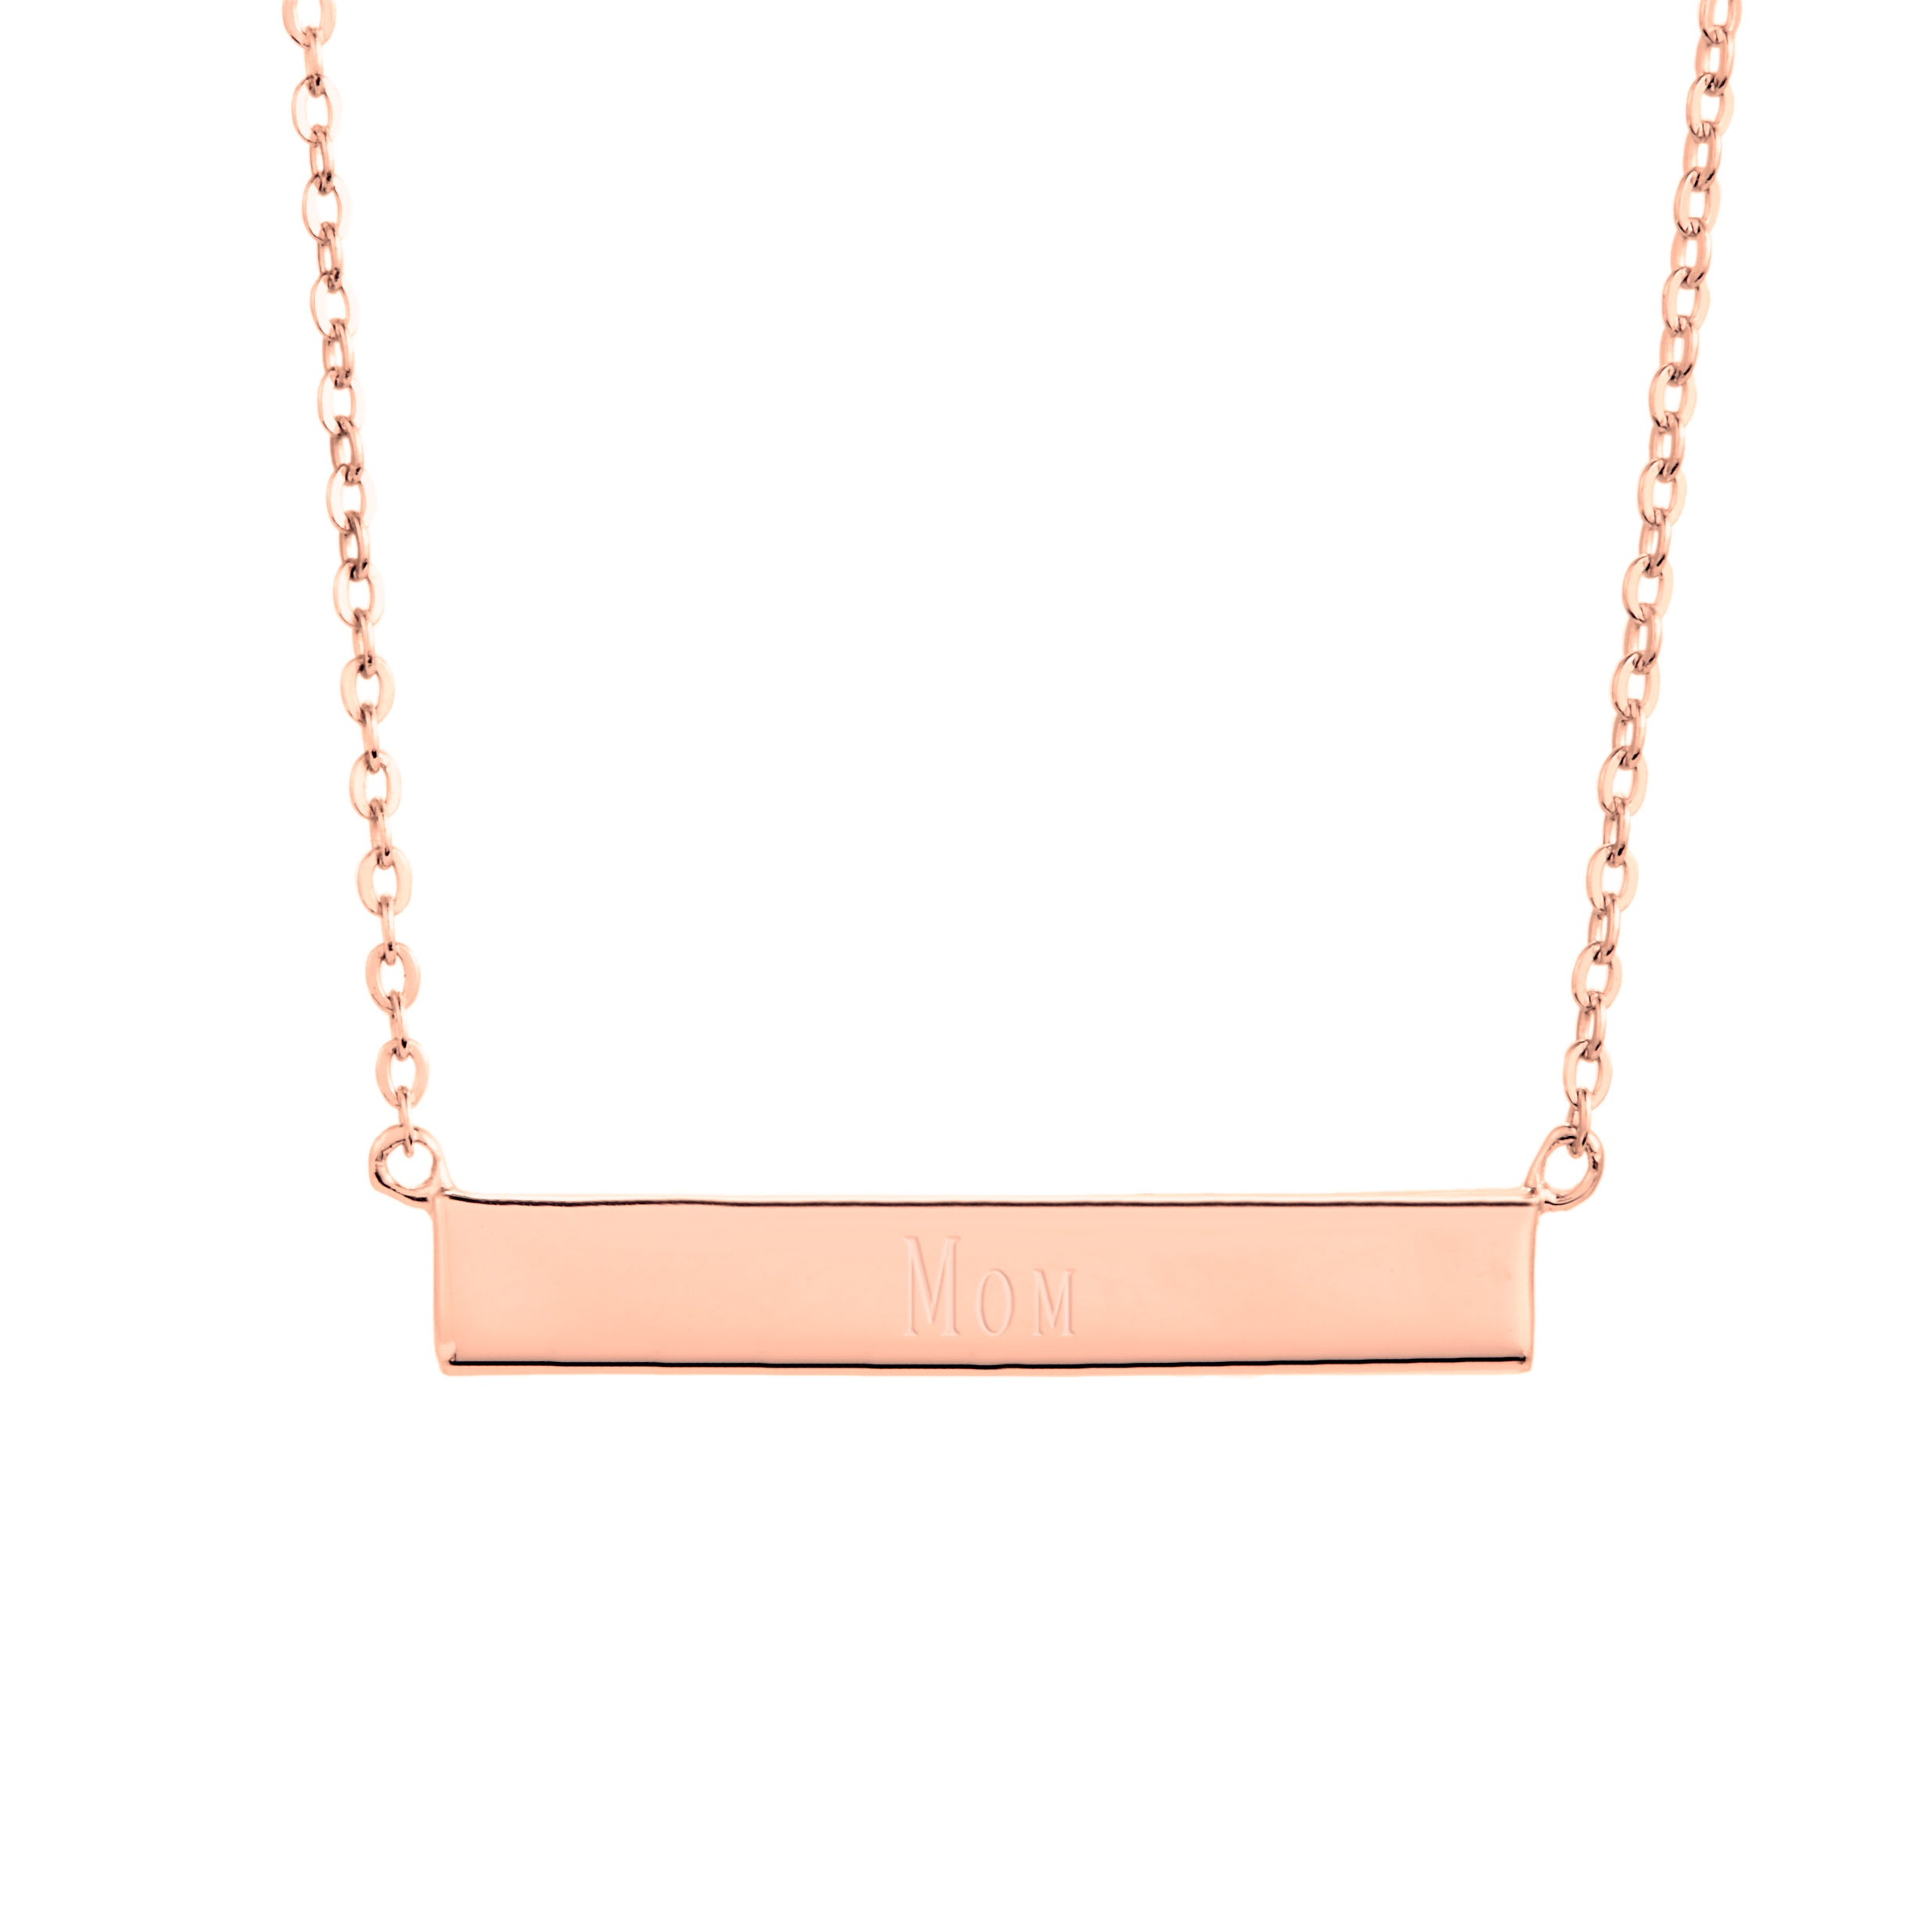 in lyst product gallery bar jennifer jewelry pendant necklace metallic gold zeuner